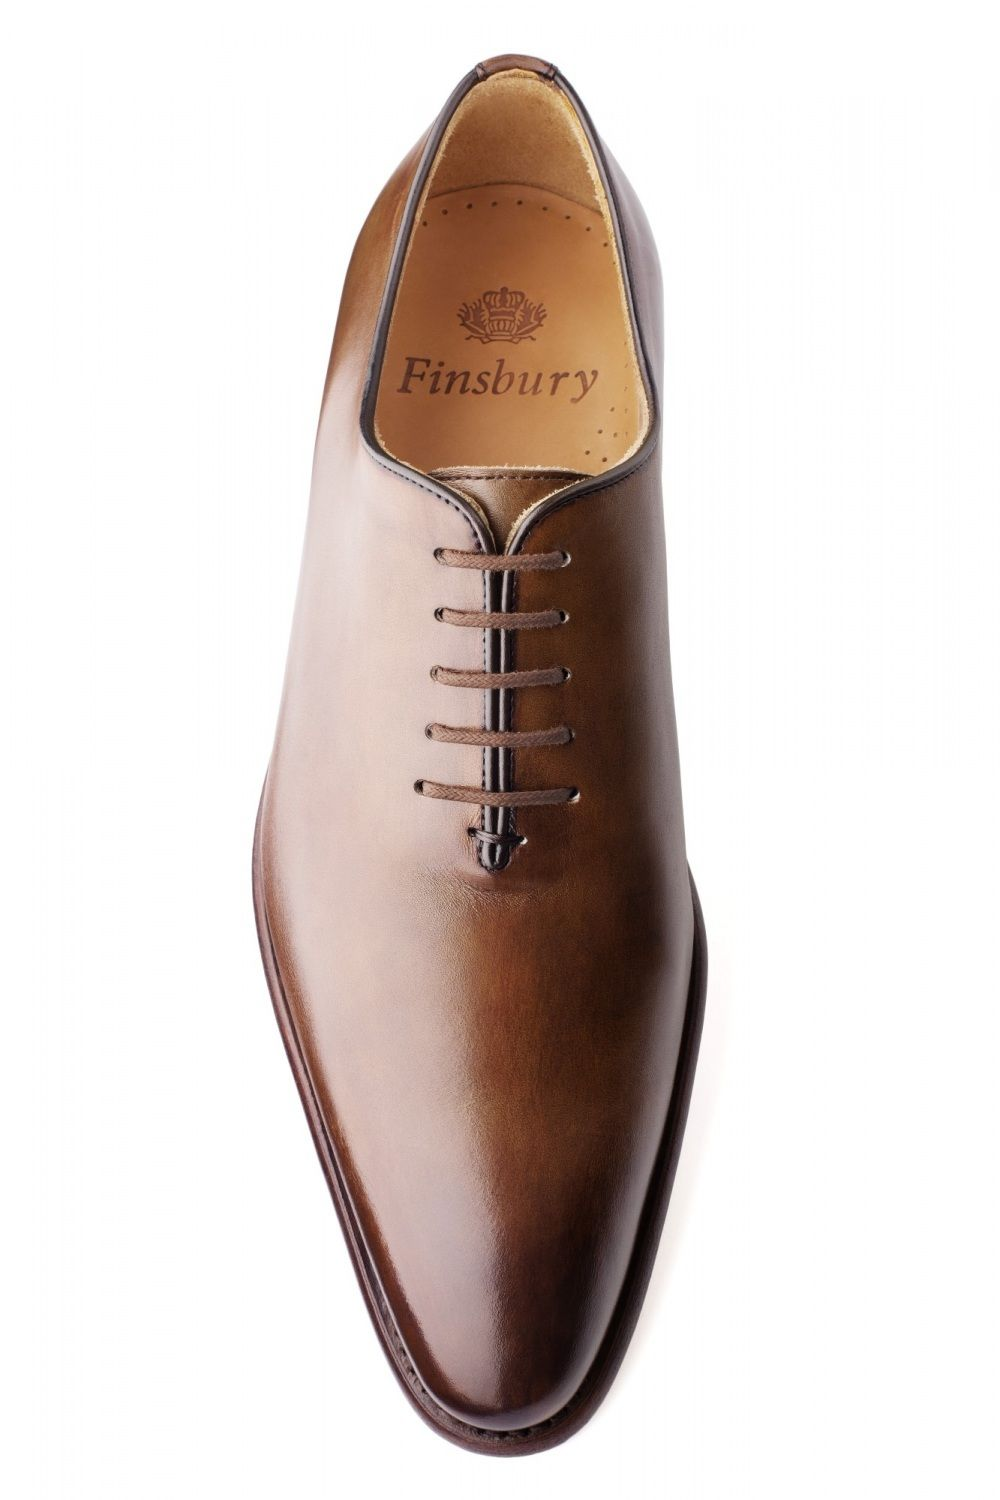 2e39730af90 Richelieu Giulia Gold Patiné pour Homme - Finsbury Shoes